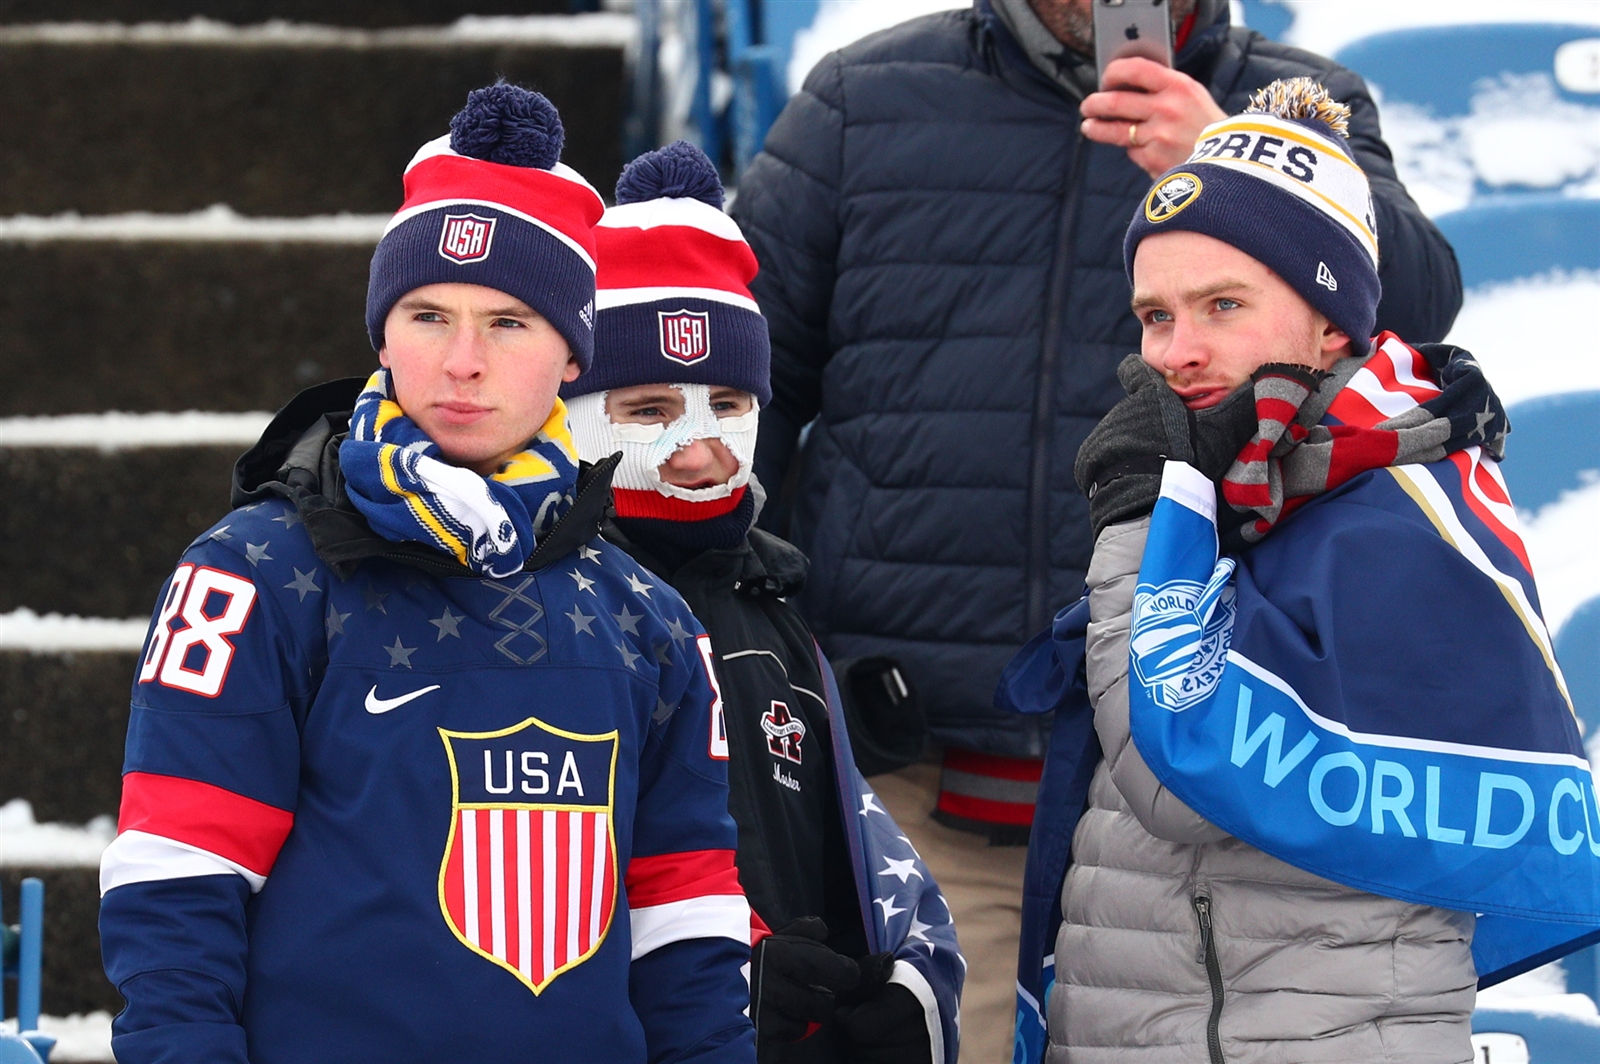 Fans show their support for their teams during the United States vs. Canada game at New Era Field in Orchard Park on Friday, Dec. 29, 2017.